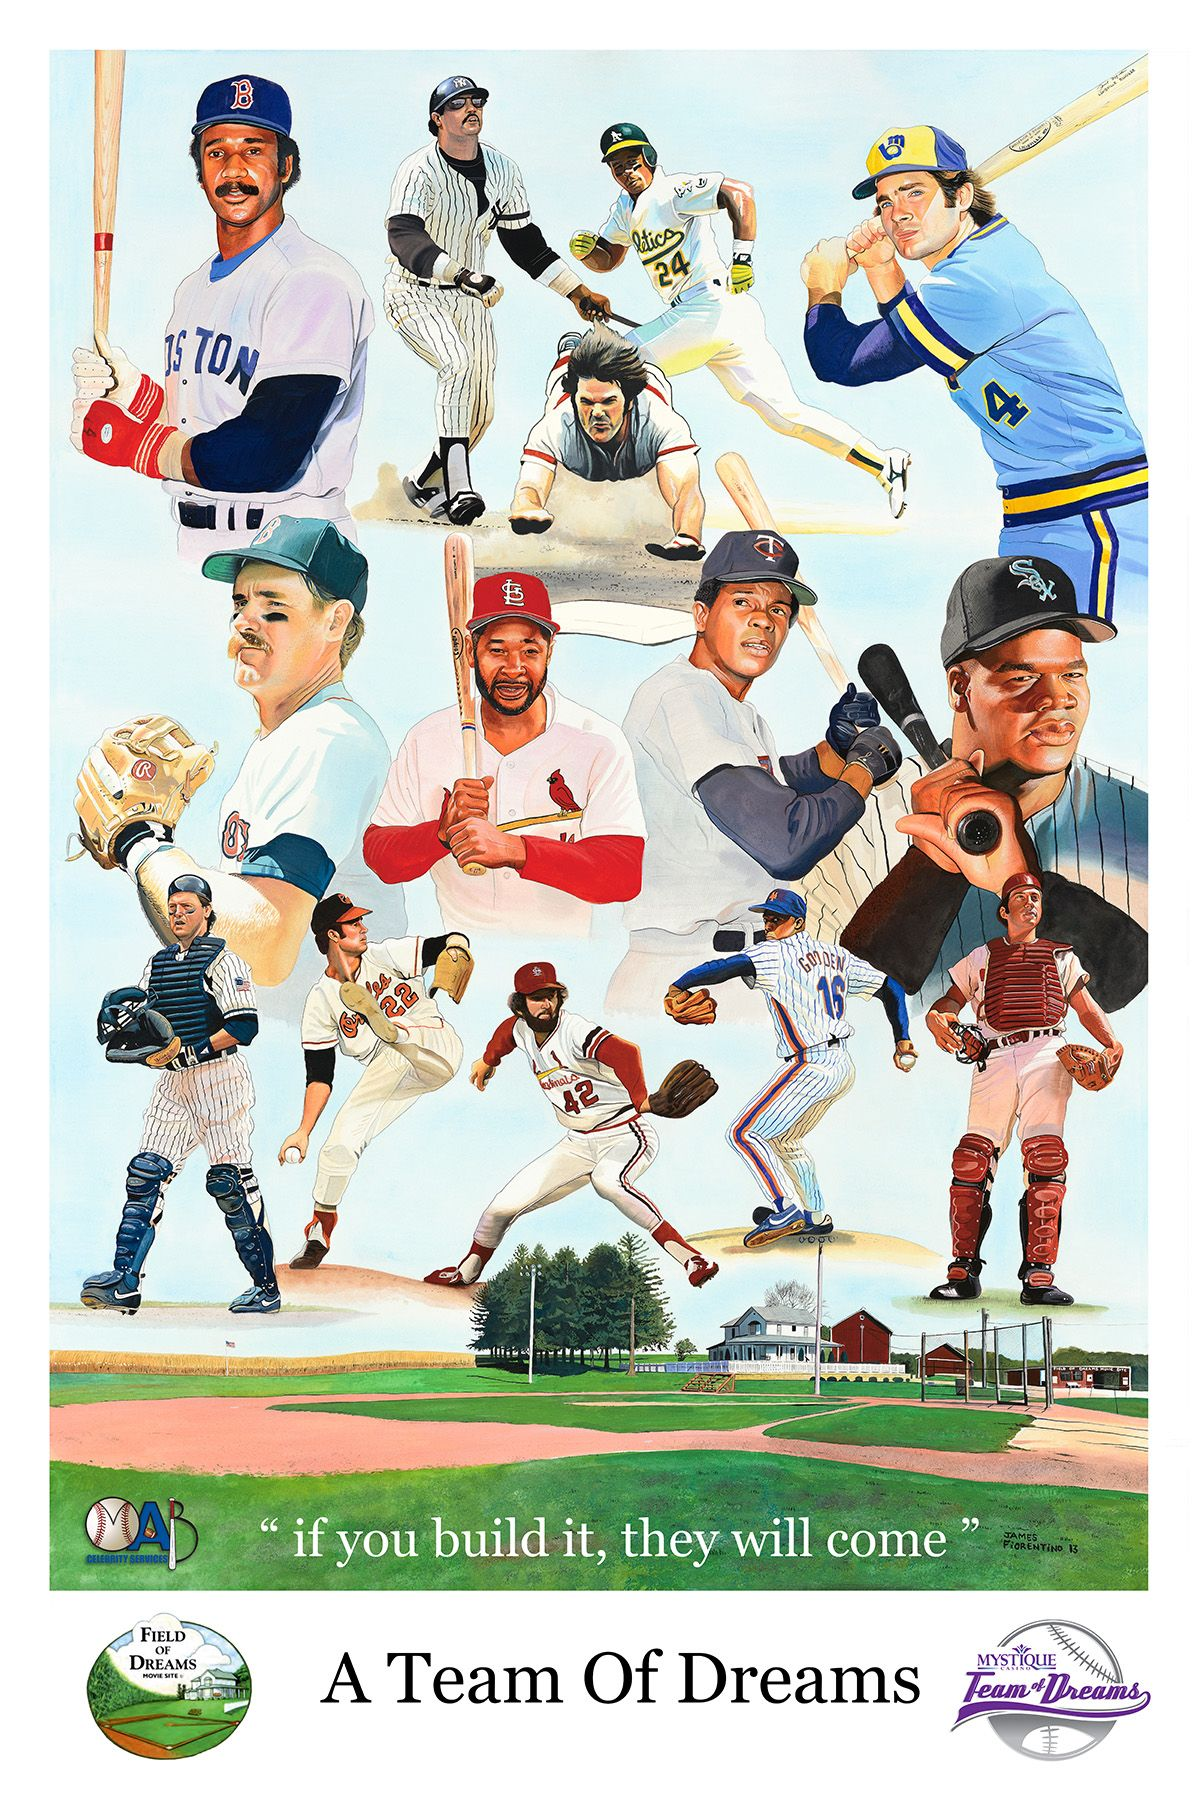 """""""A Team of Dreams"""" Original created for charity softball game of baseball hall of famers and all stars at the actual Field of Dreams movie site in Iowa. Limited edition signed giclees available. MAB Celebrity"""